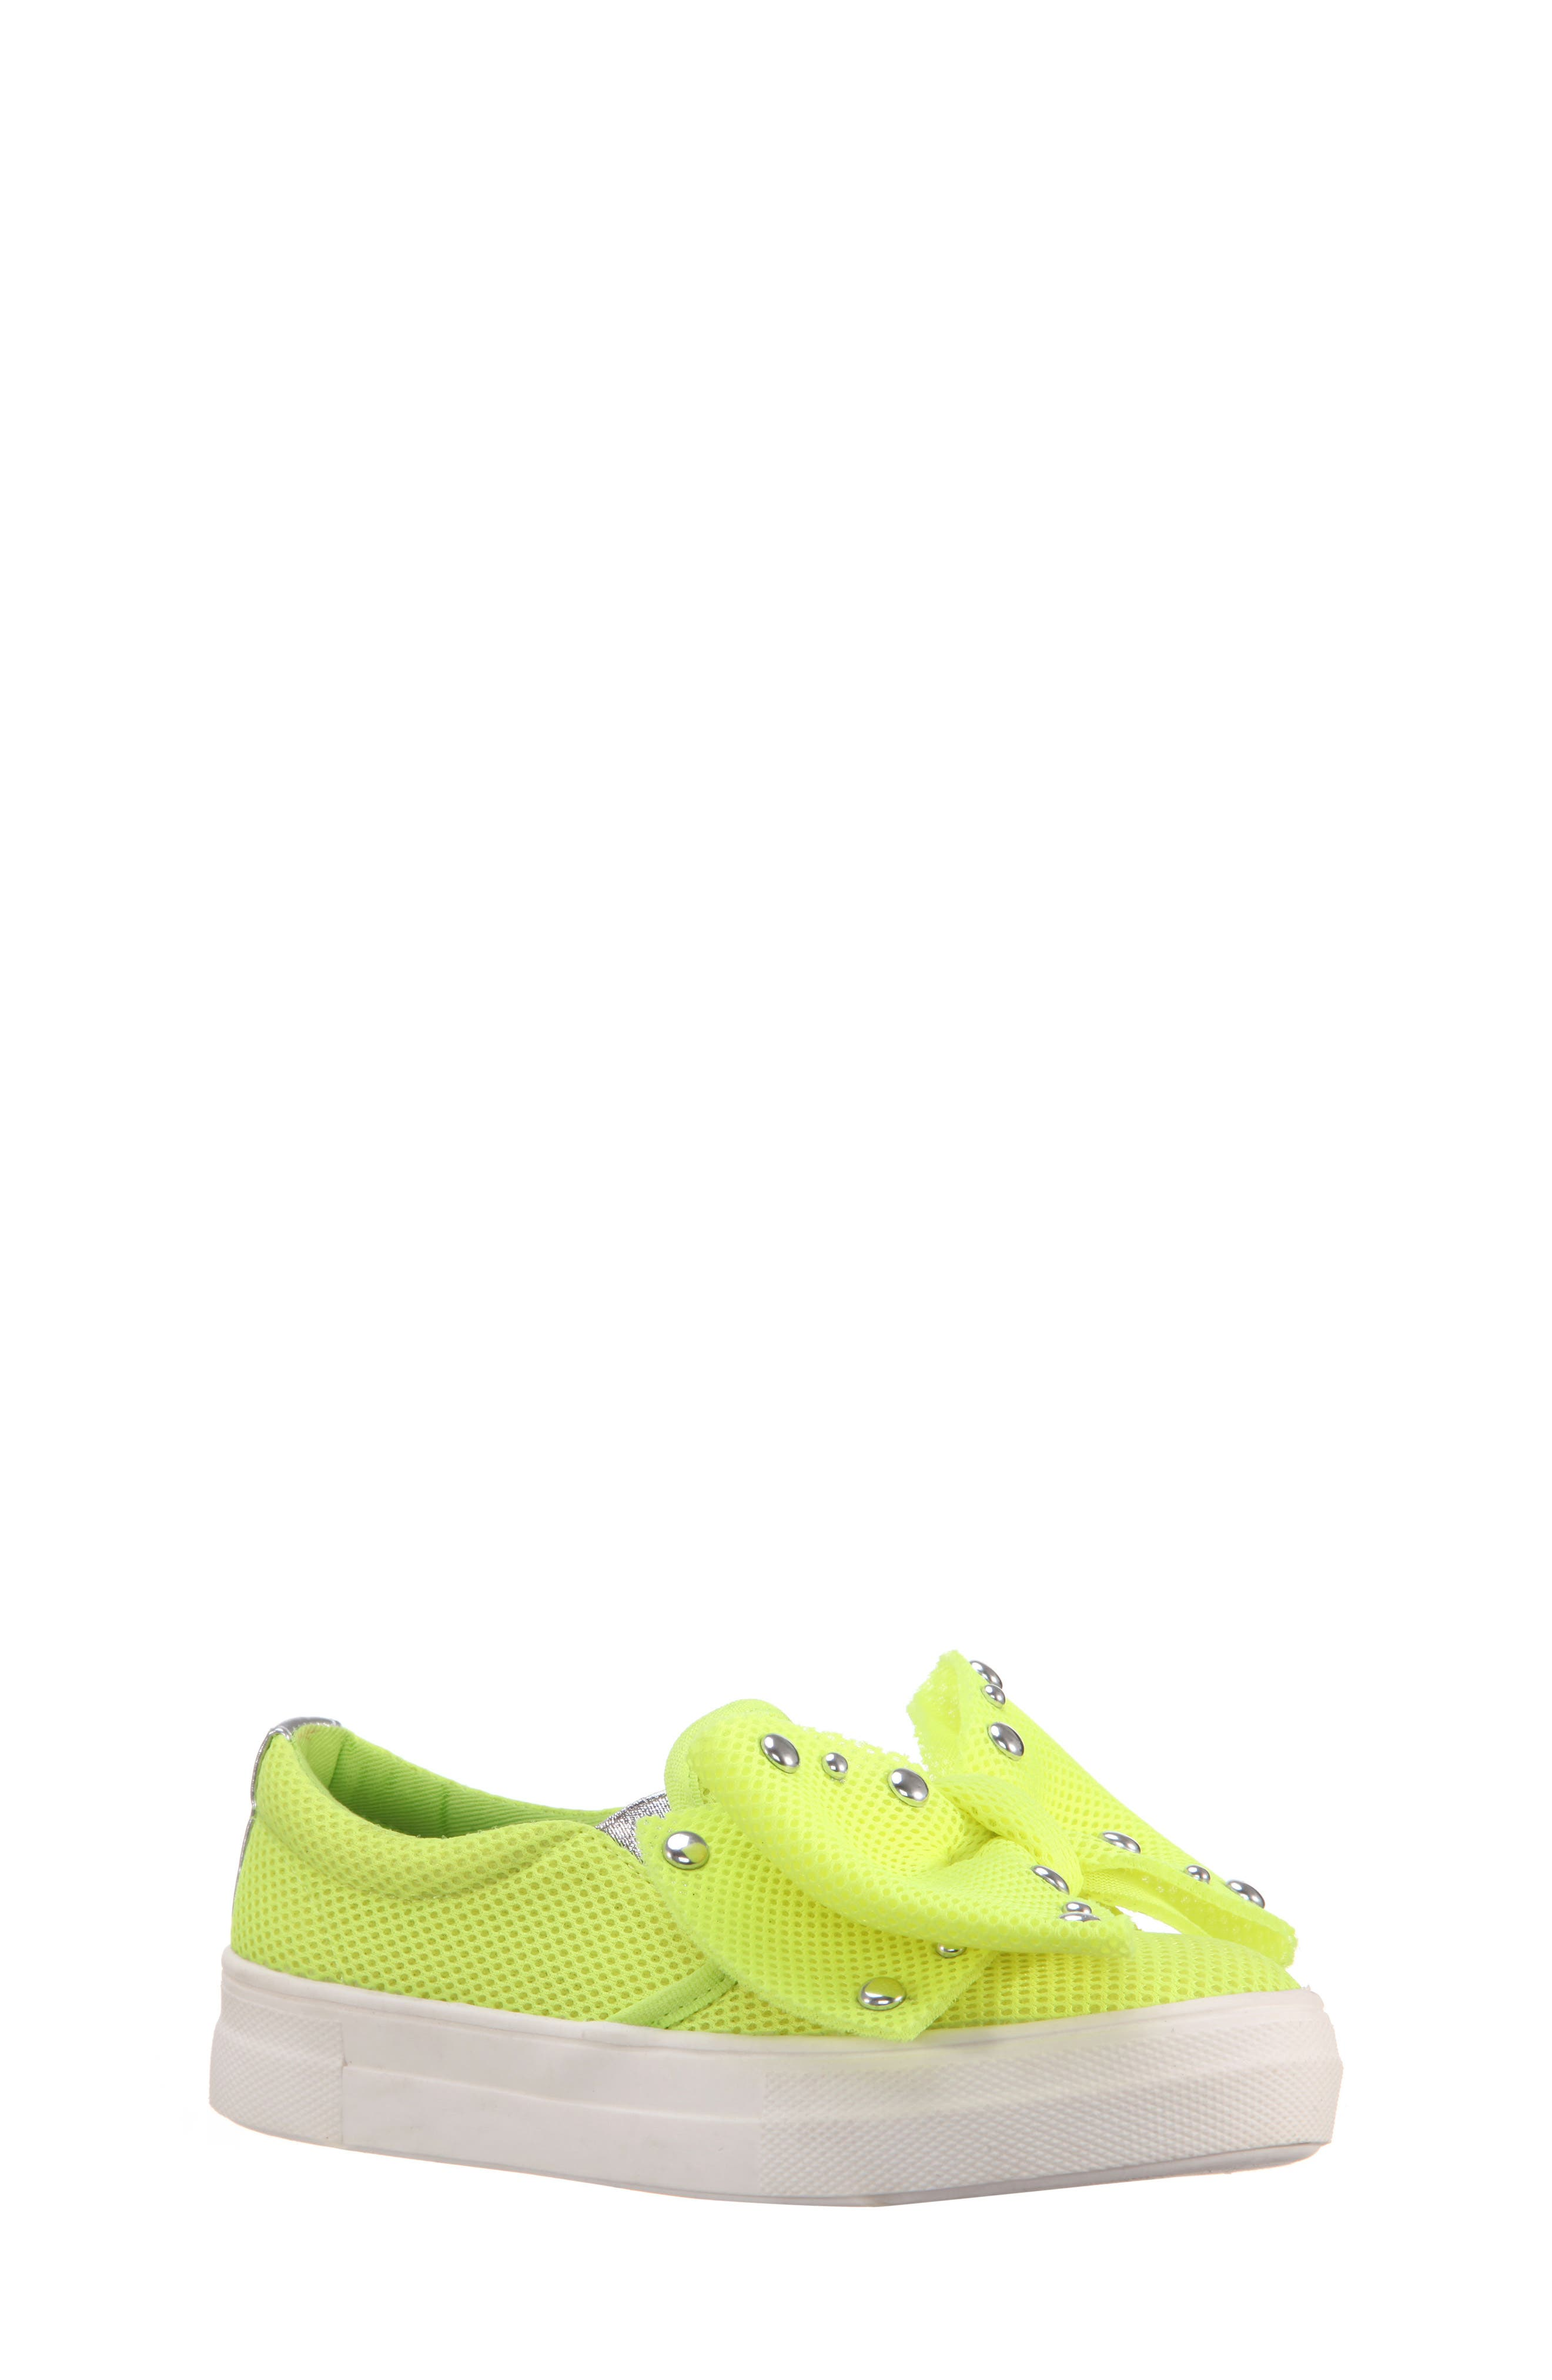 Mary Bow Slip-On Sneaker,                         Main,                         color, Neon Yellow Mesh